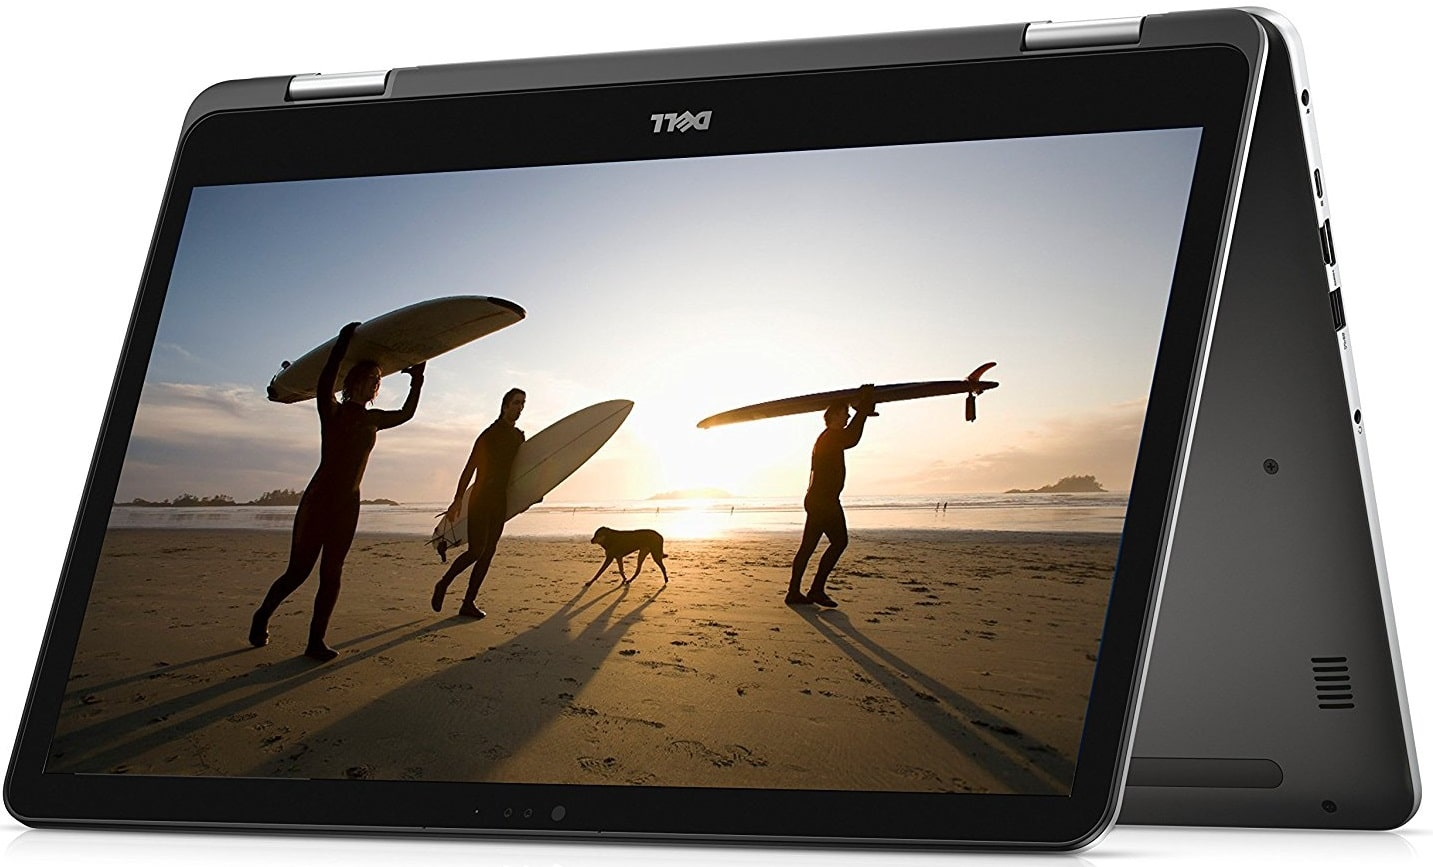 DELL Inspiron 5000 best laptop under 600 pounds